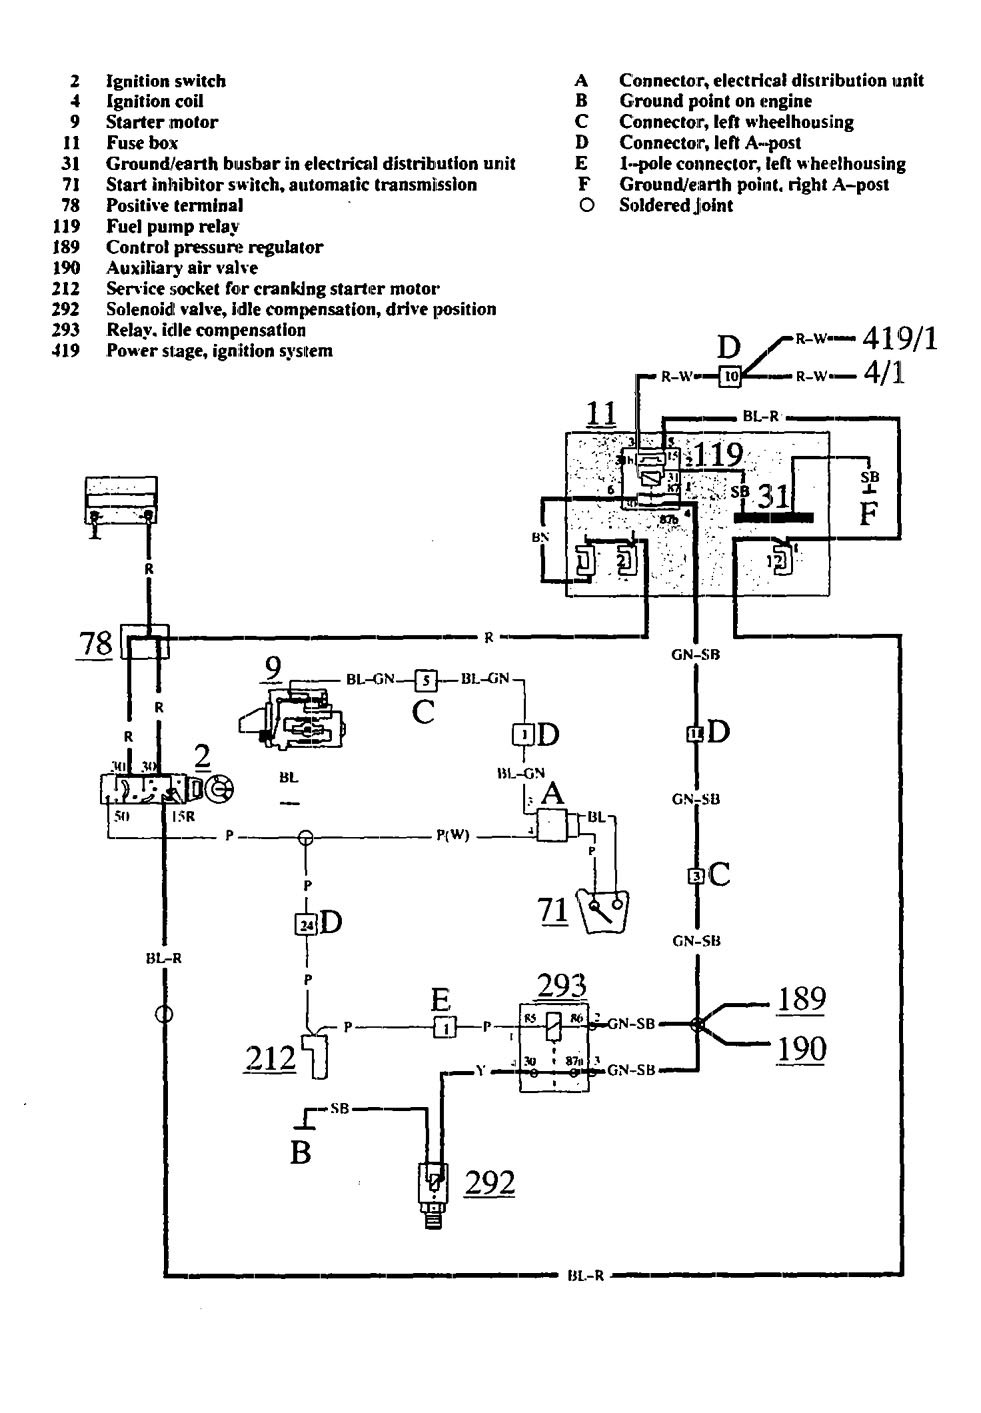 Volvo Wiring Diagram Fuel Pump on 1993 Honda Accord Wiring Diagram